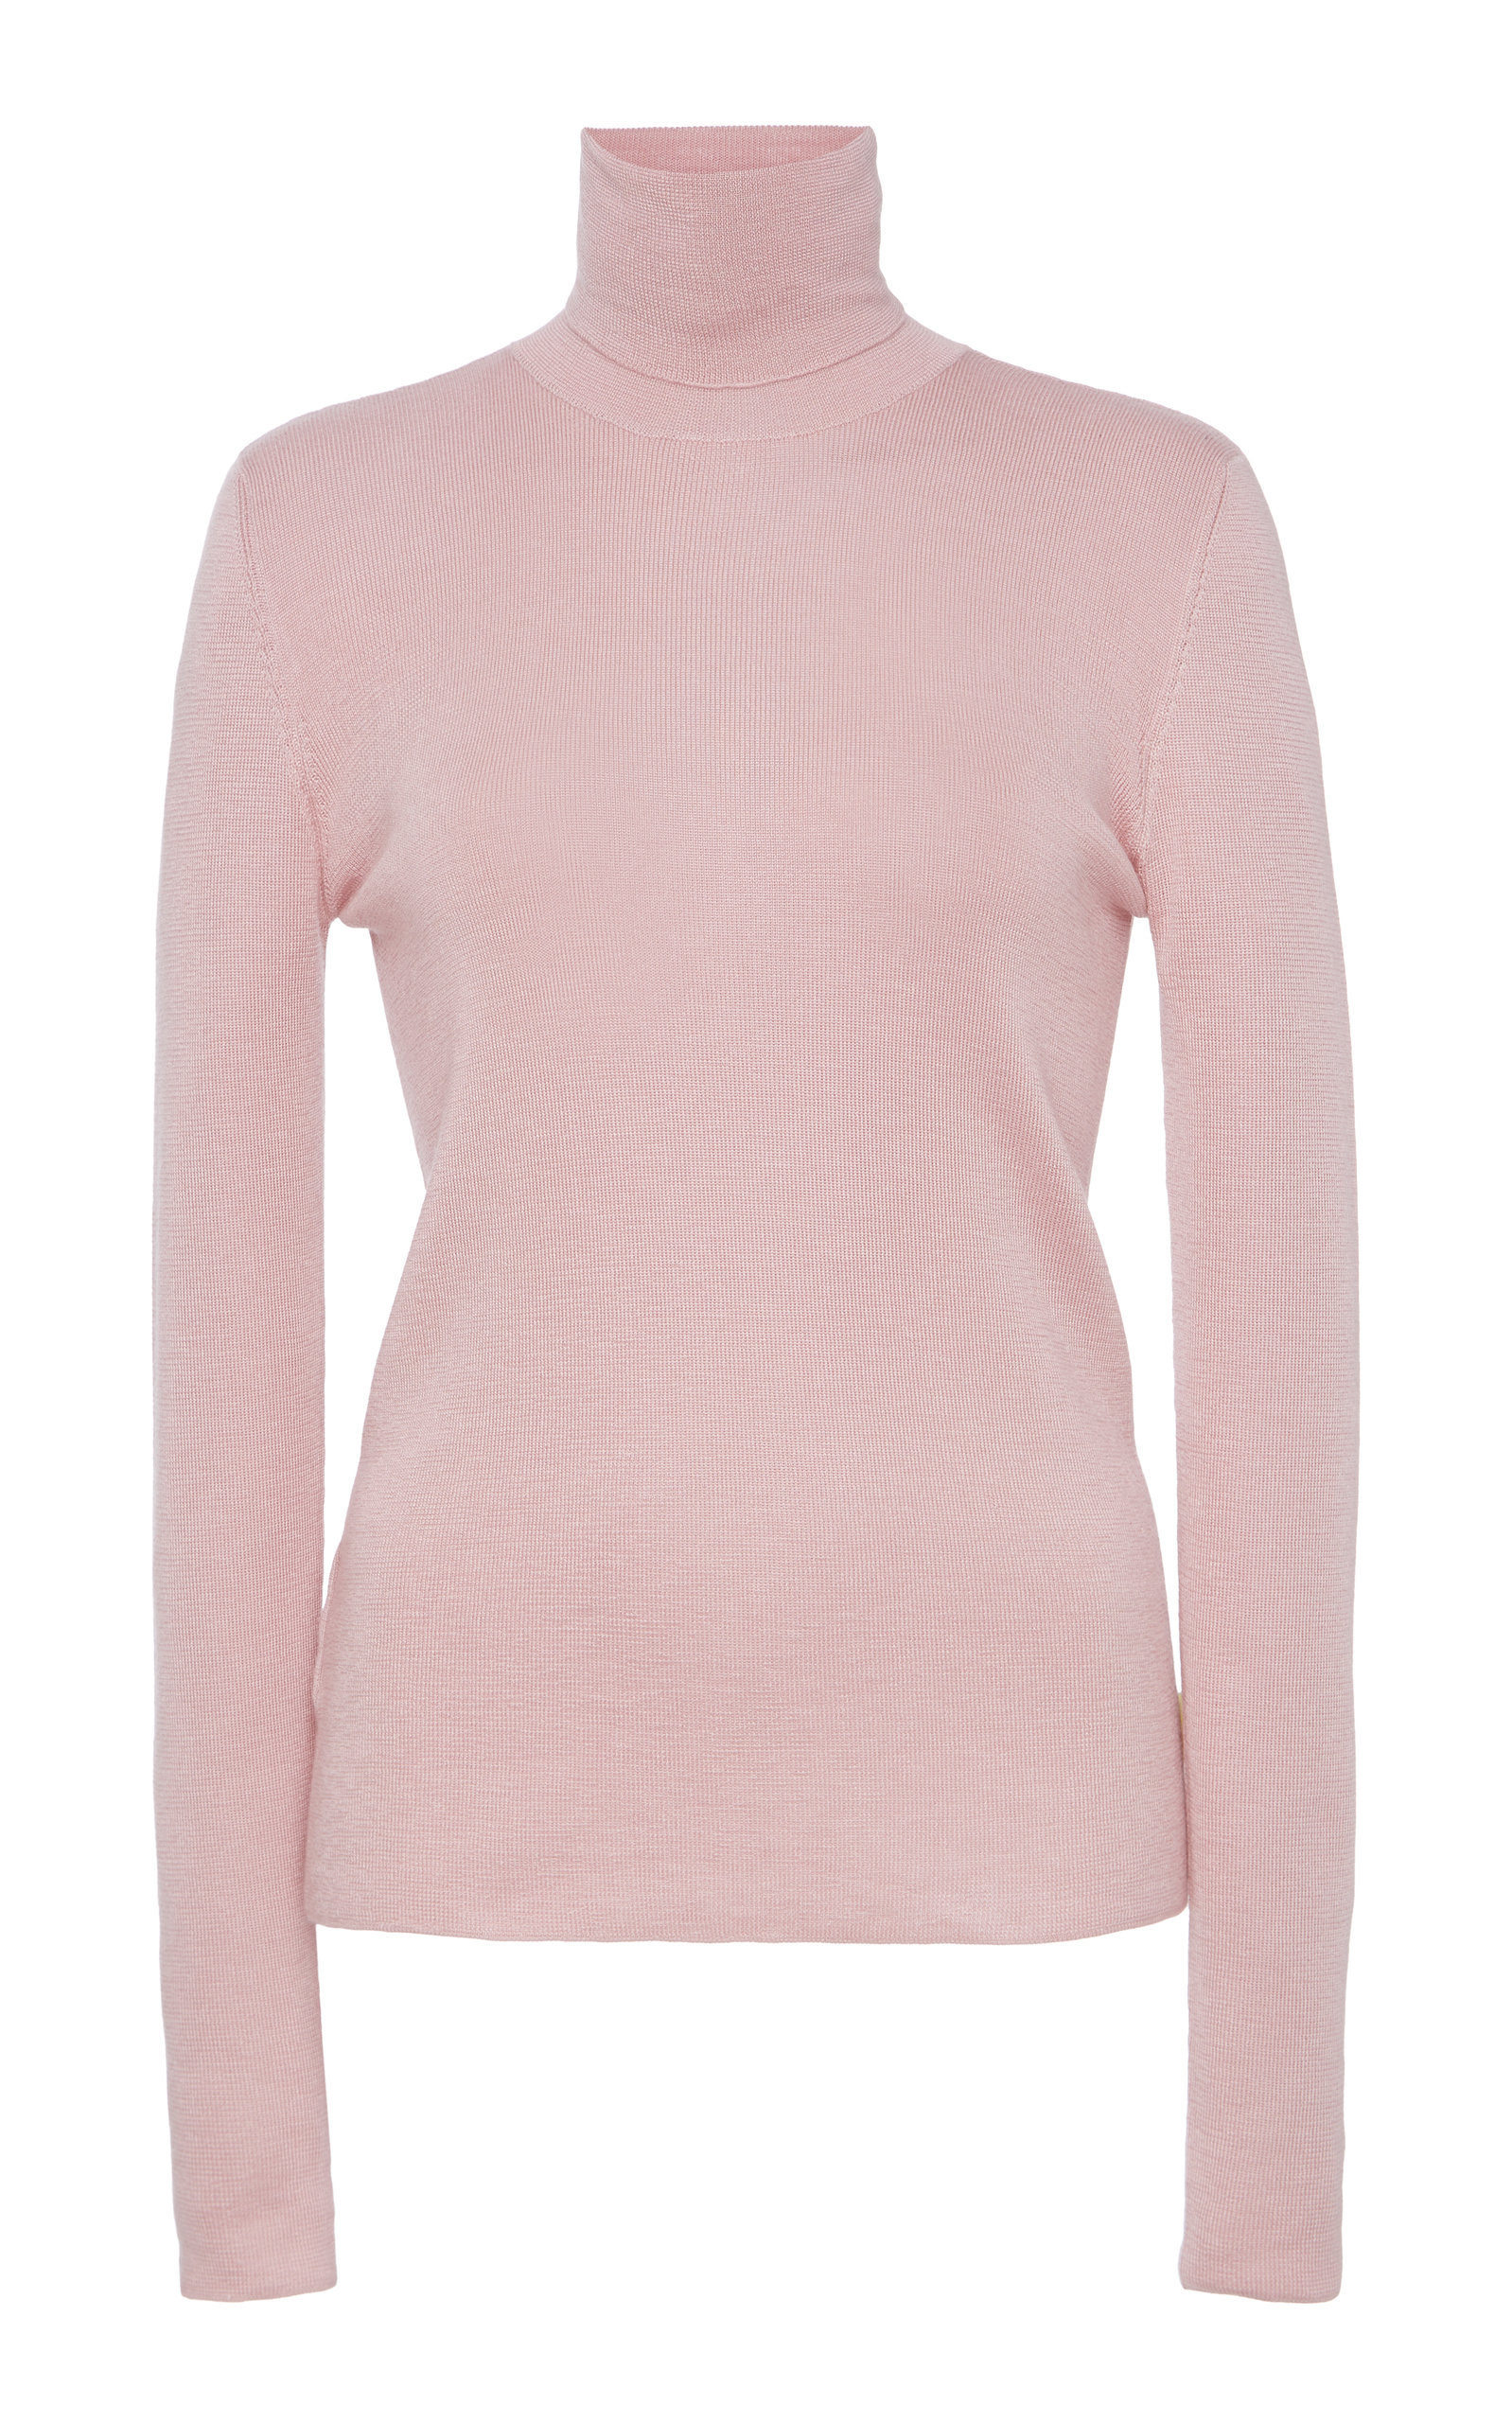 Prada Tops Cashmere Turtleneck Sweater